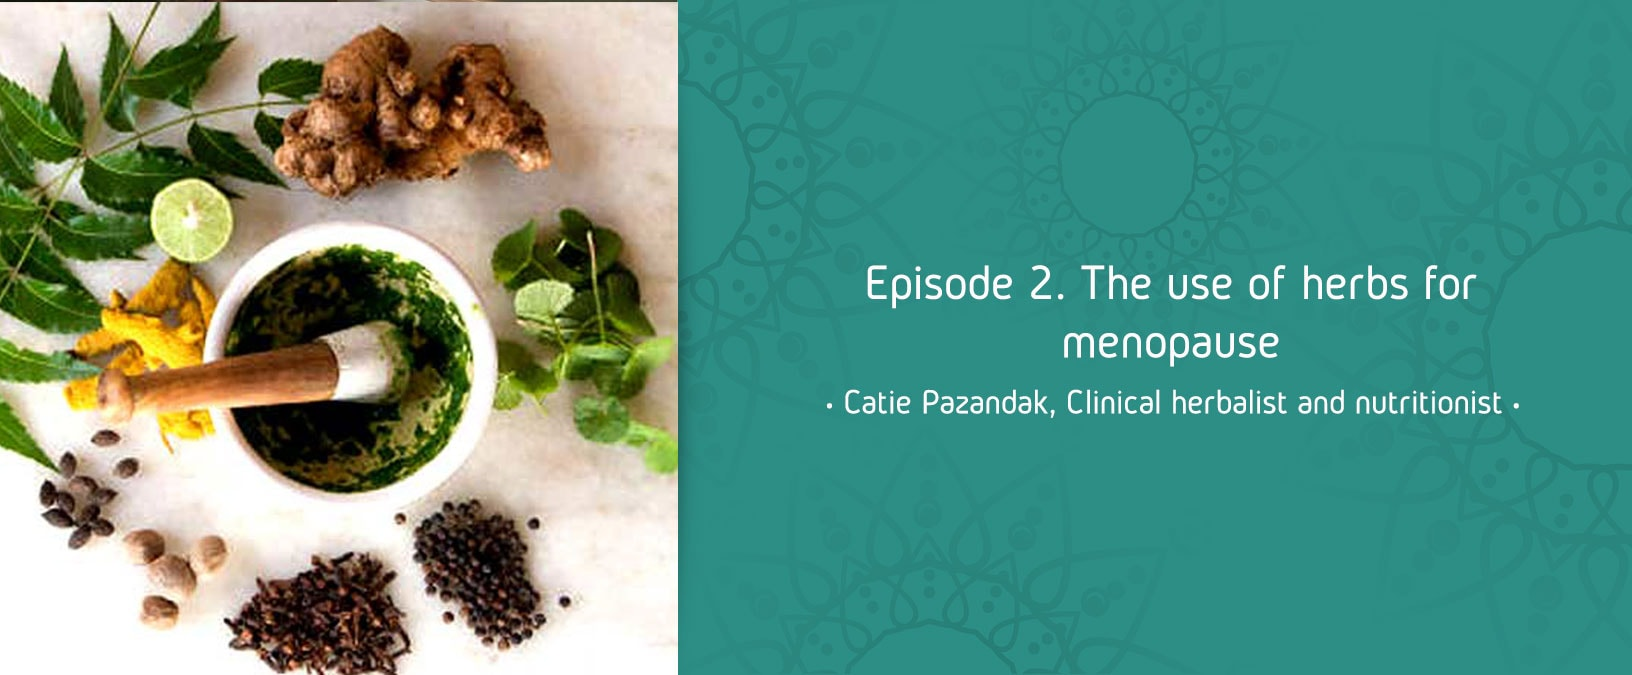 Episode 2. The use of herbs for menopause